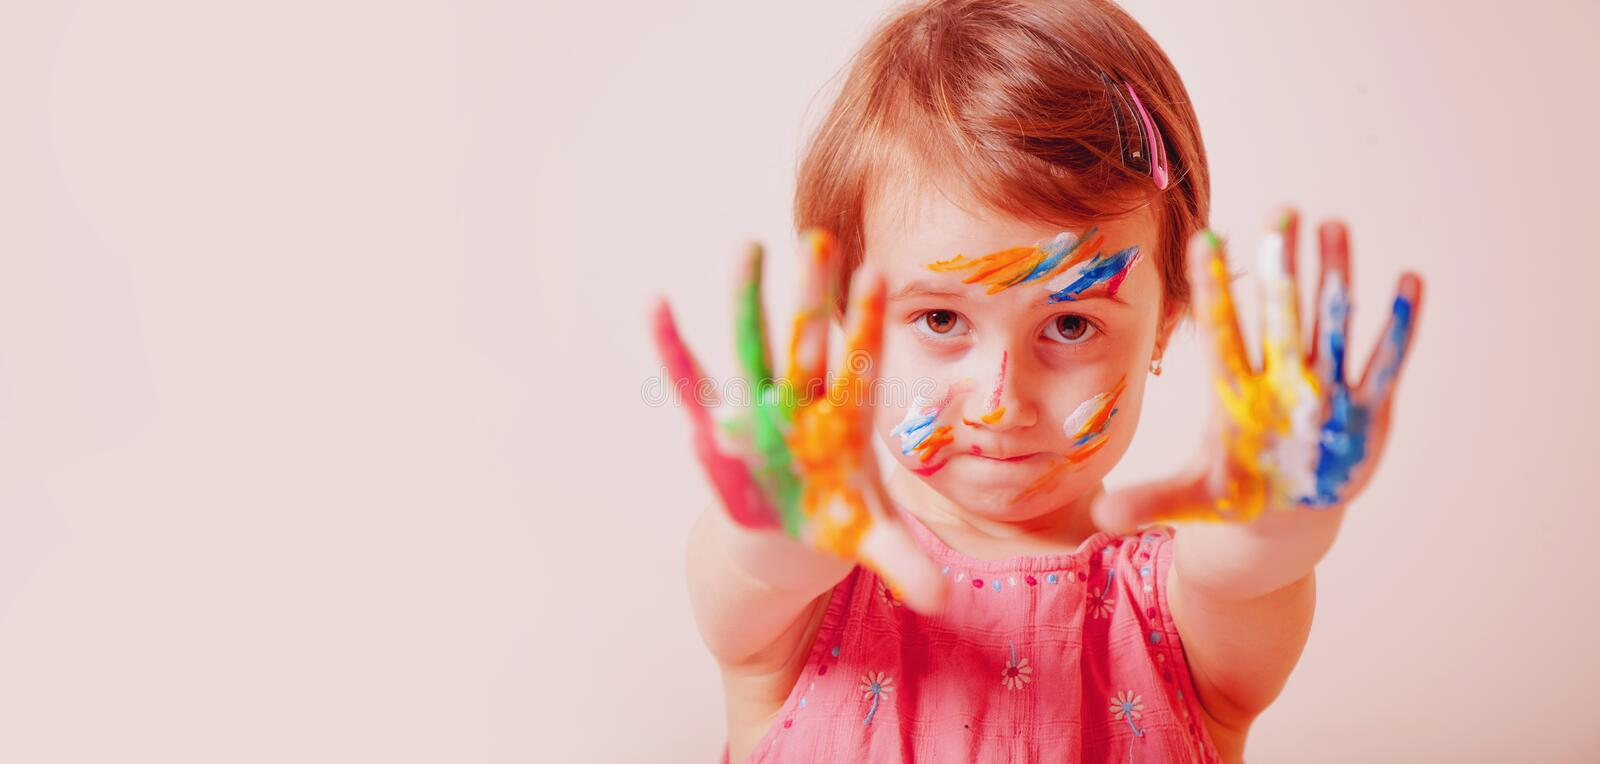 Humorous portrait of cute little child girl with colorful painted faceand hands. Children`s meykap royalty free stock image